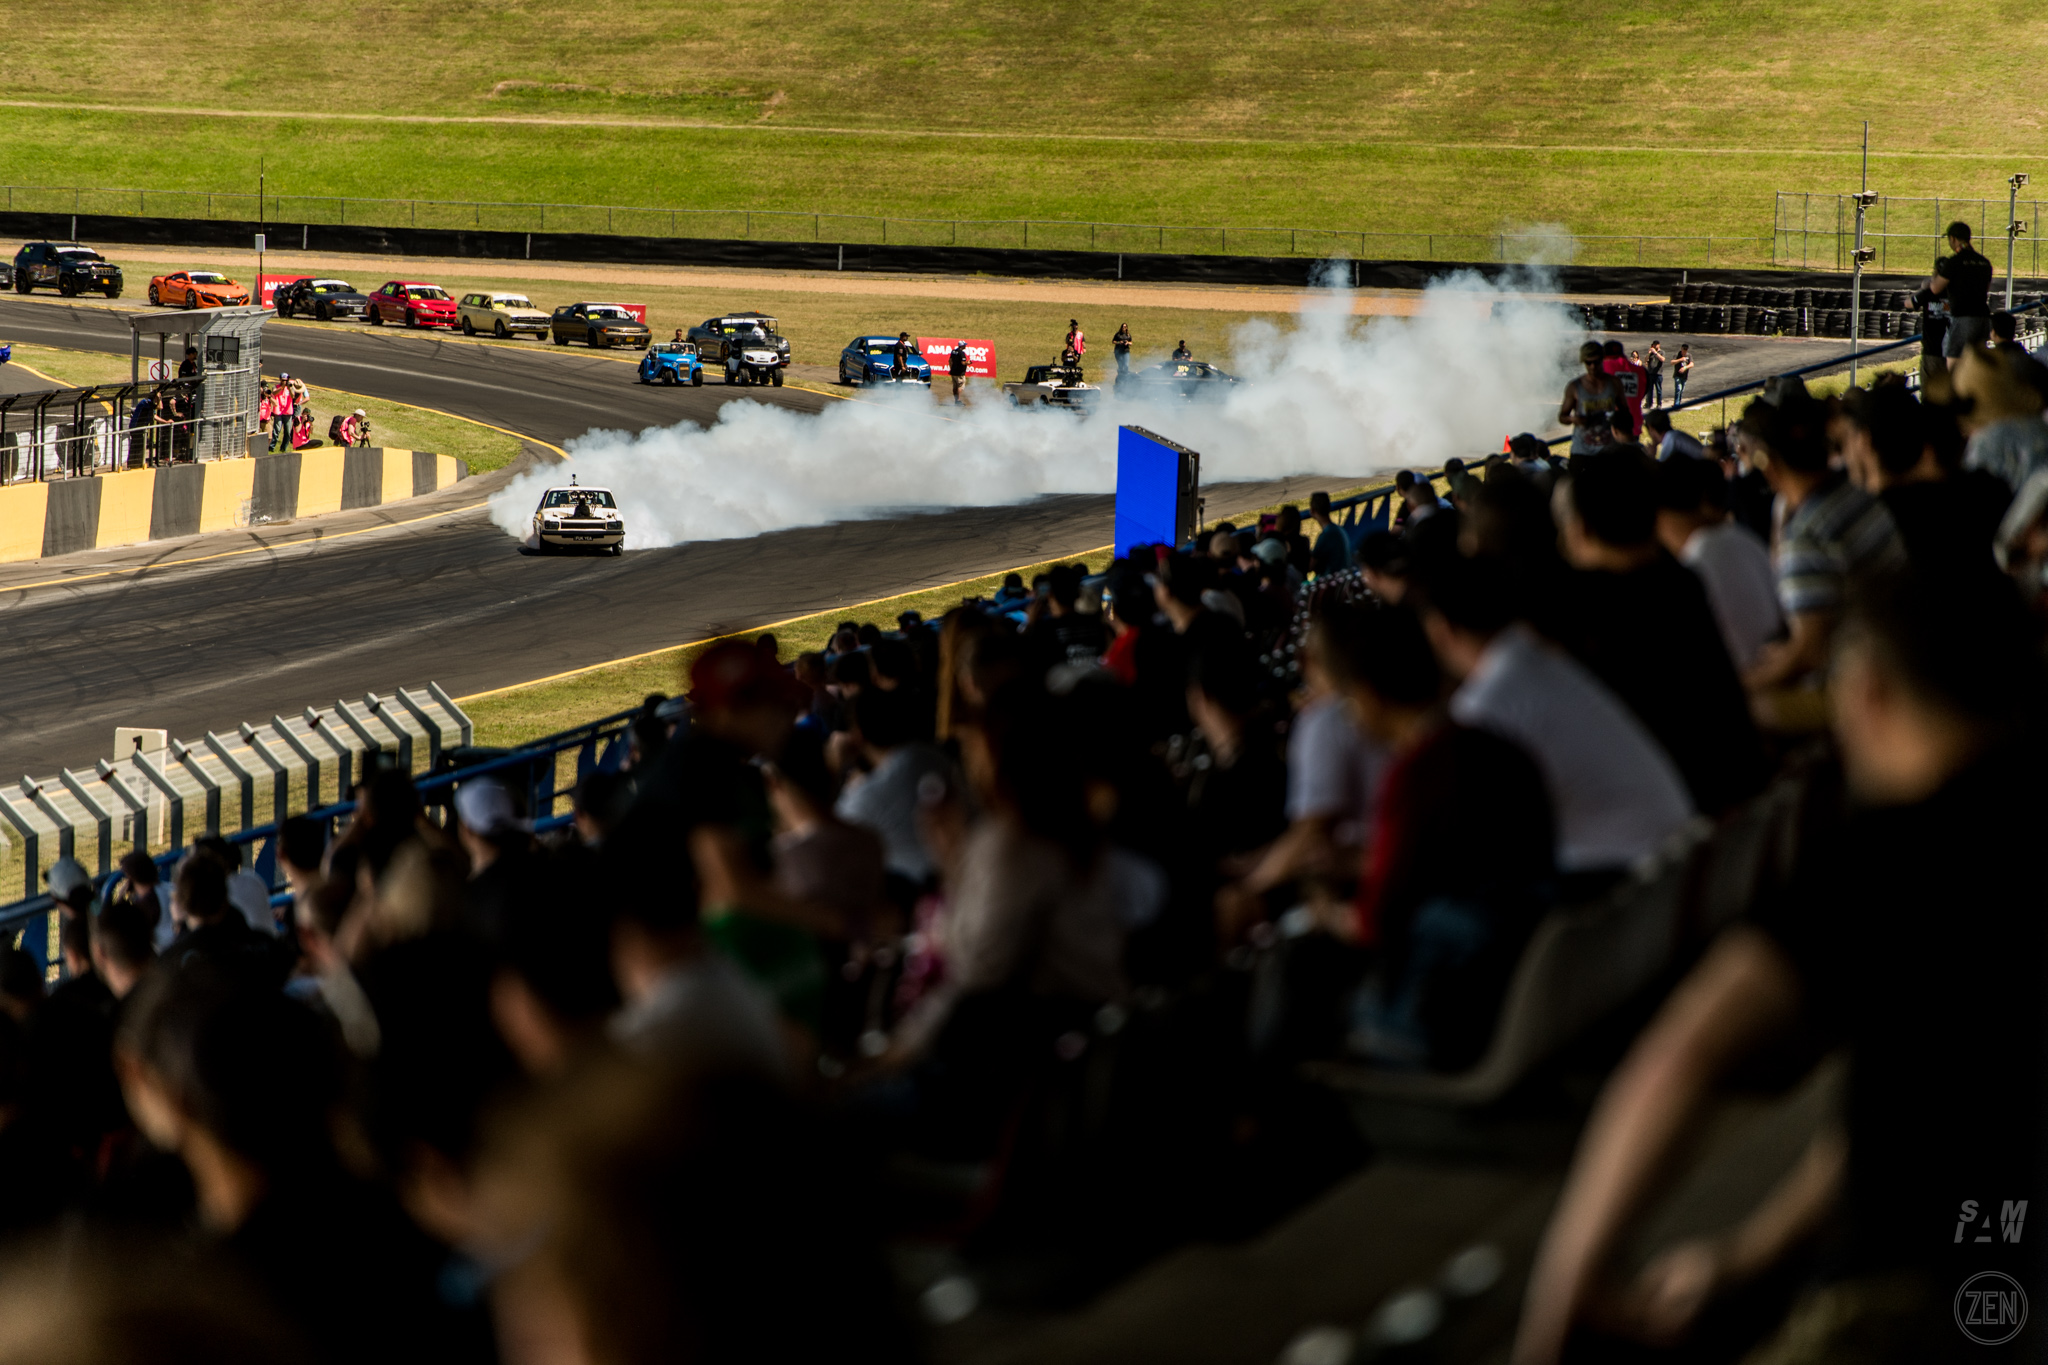 2019-10-18 - WTAC Day 01 042